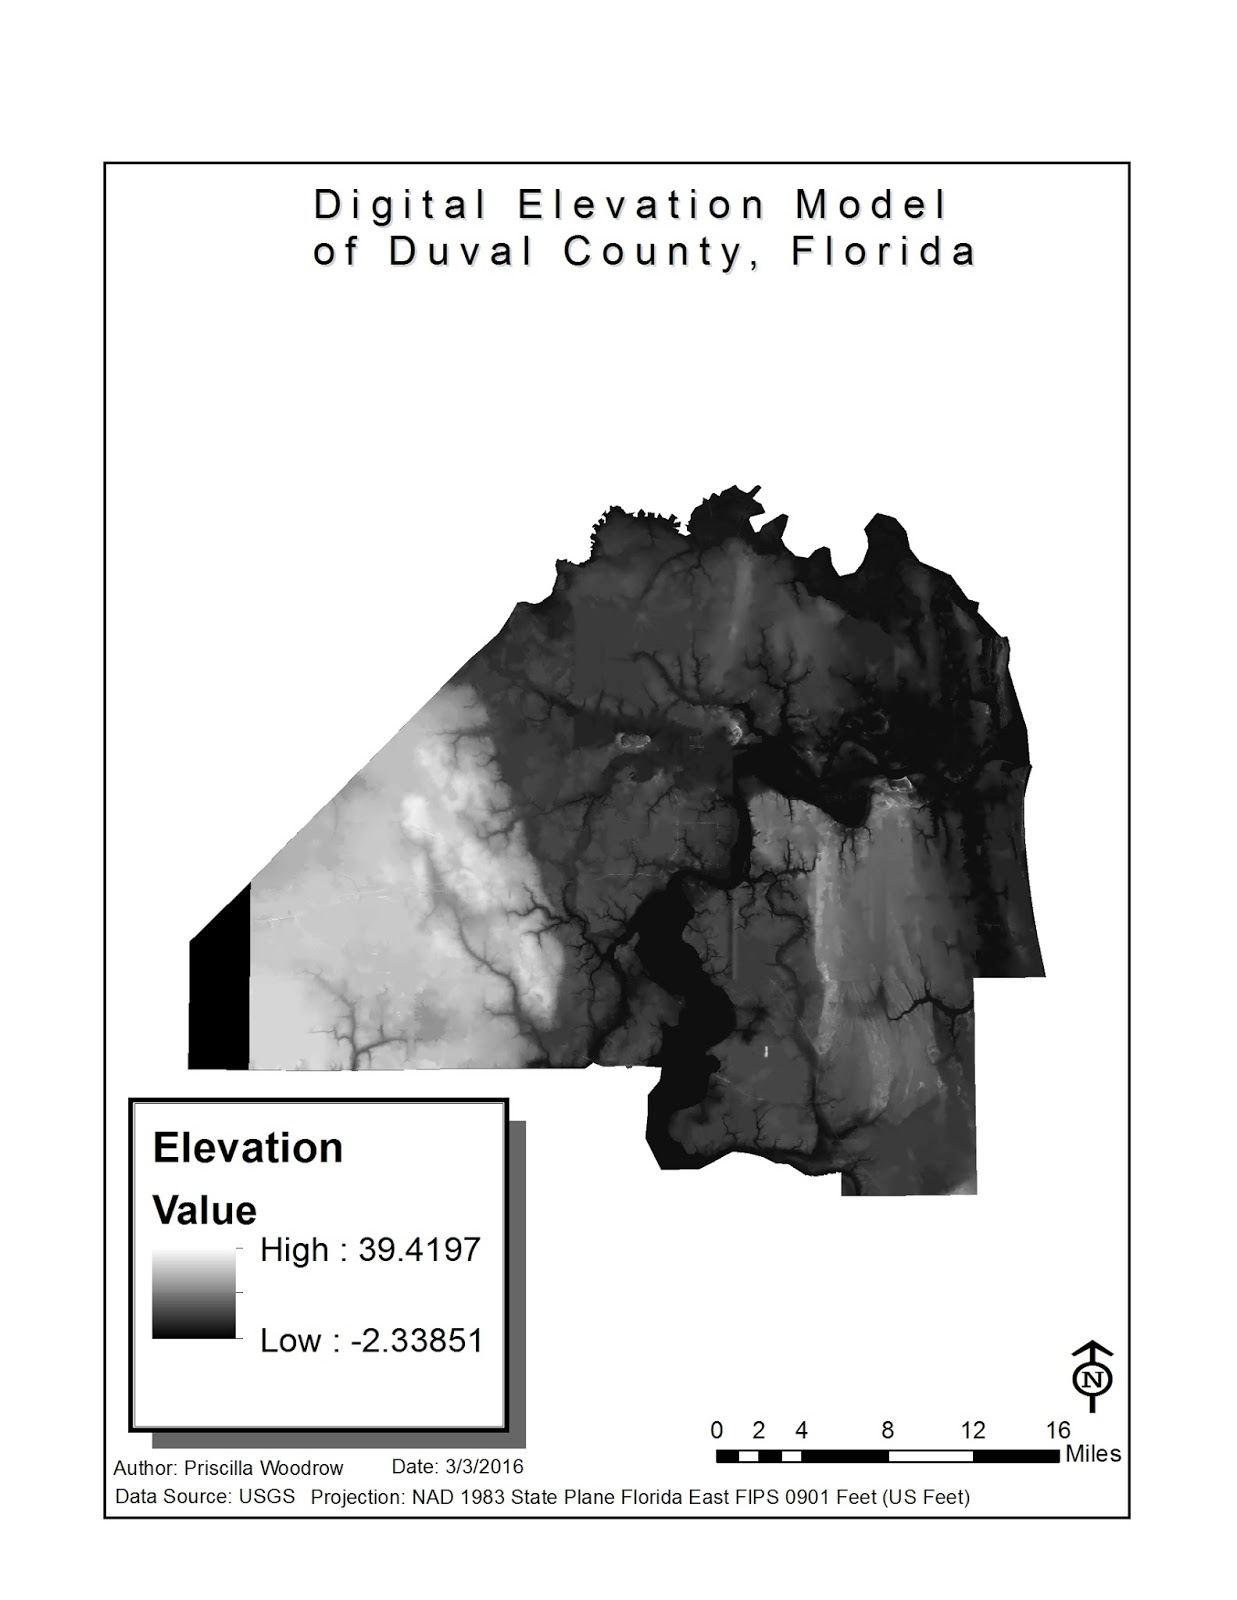 this map shows the elevation of duval county the light quantities represent high elevation and the dark quantities represent low elevation